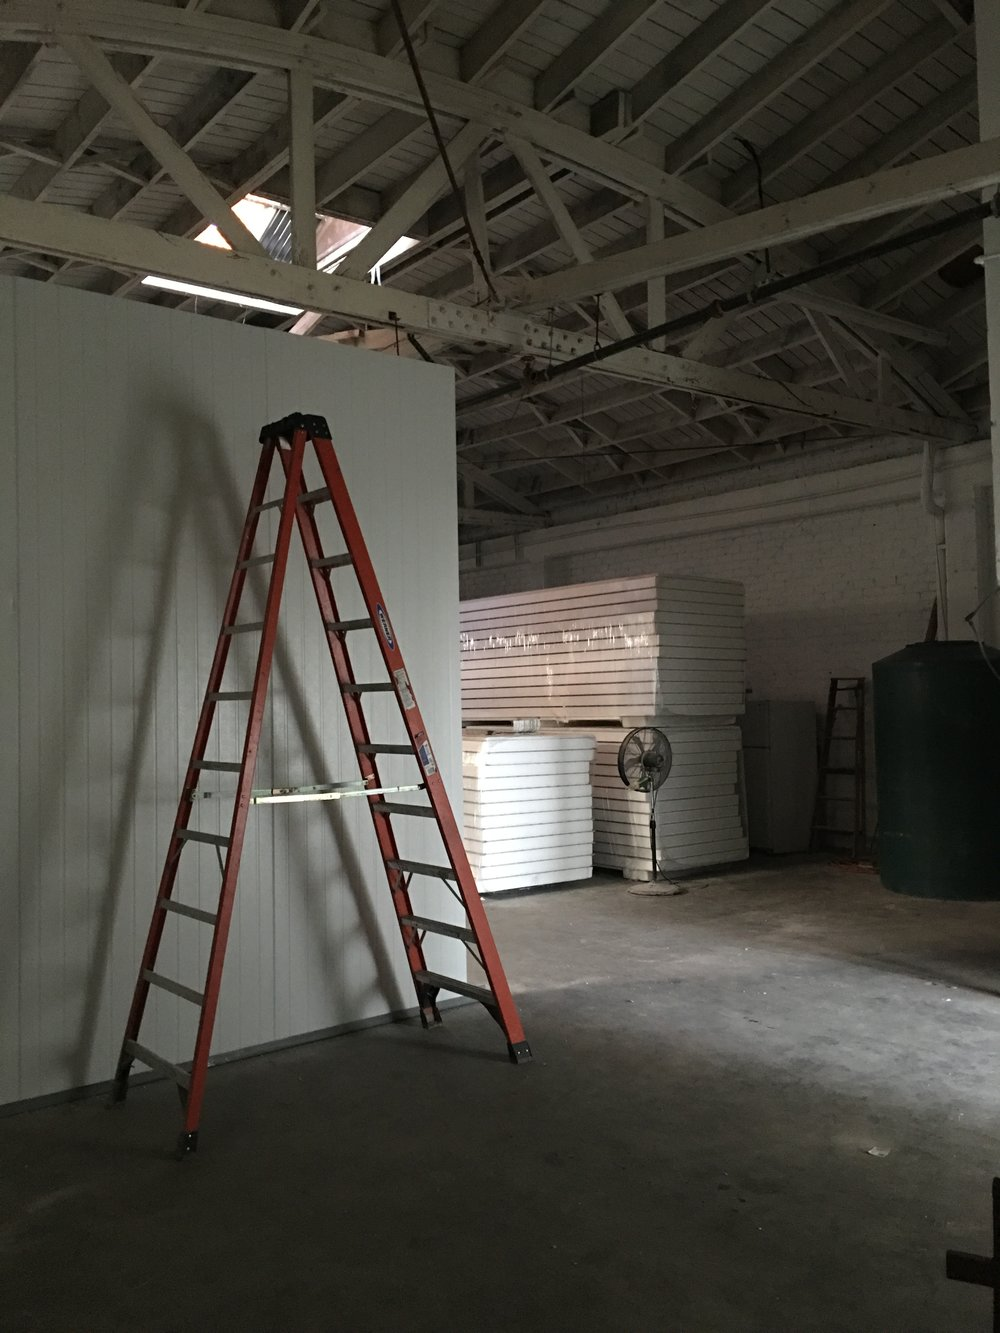 GROW ROOMS UNDER CONSTRUCTION